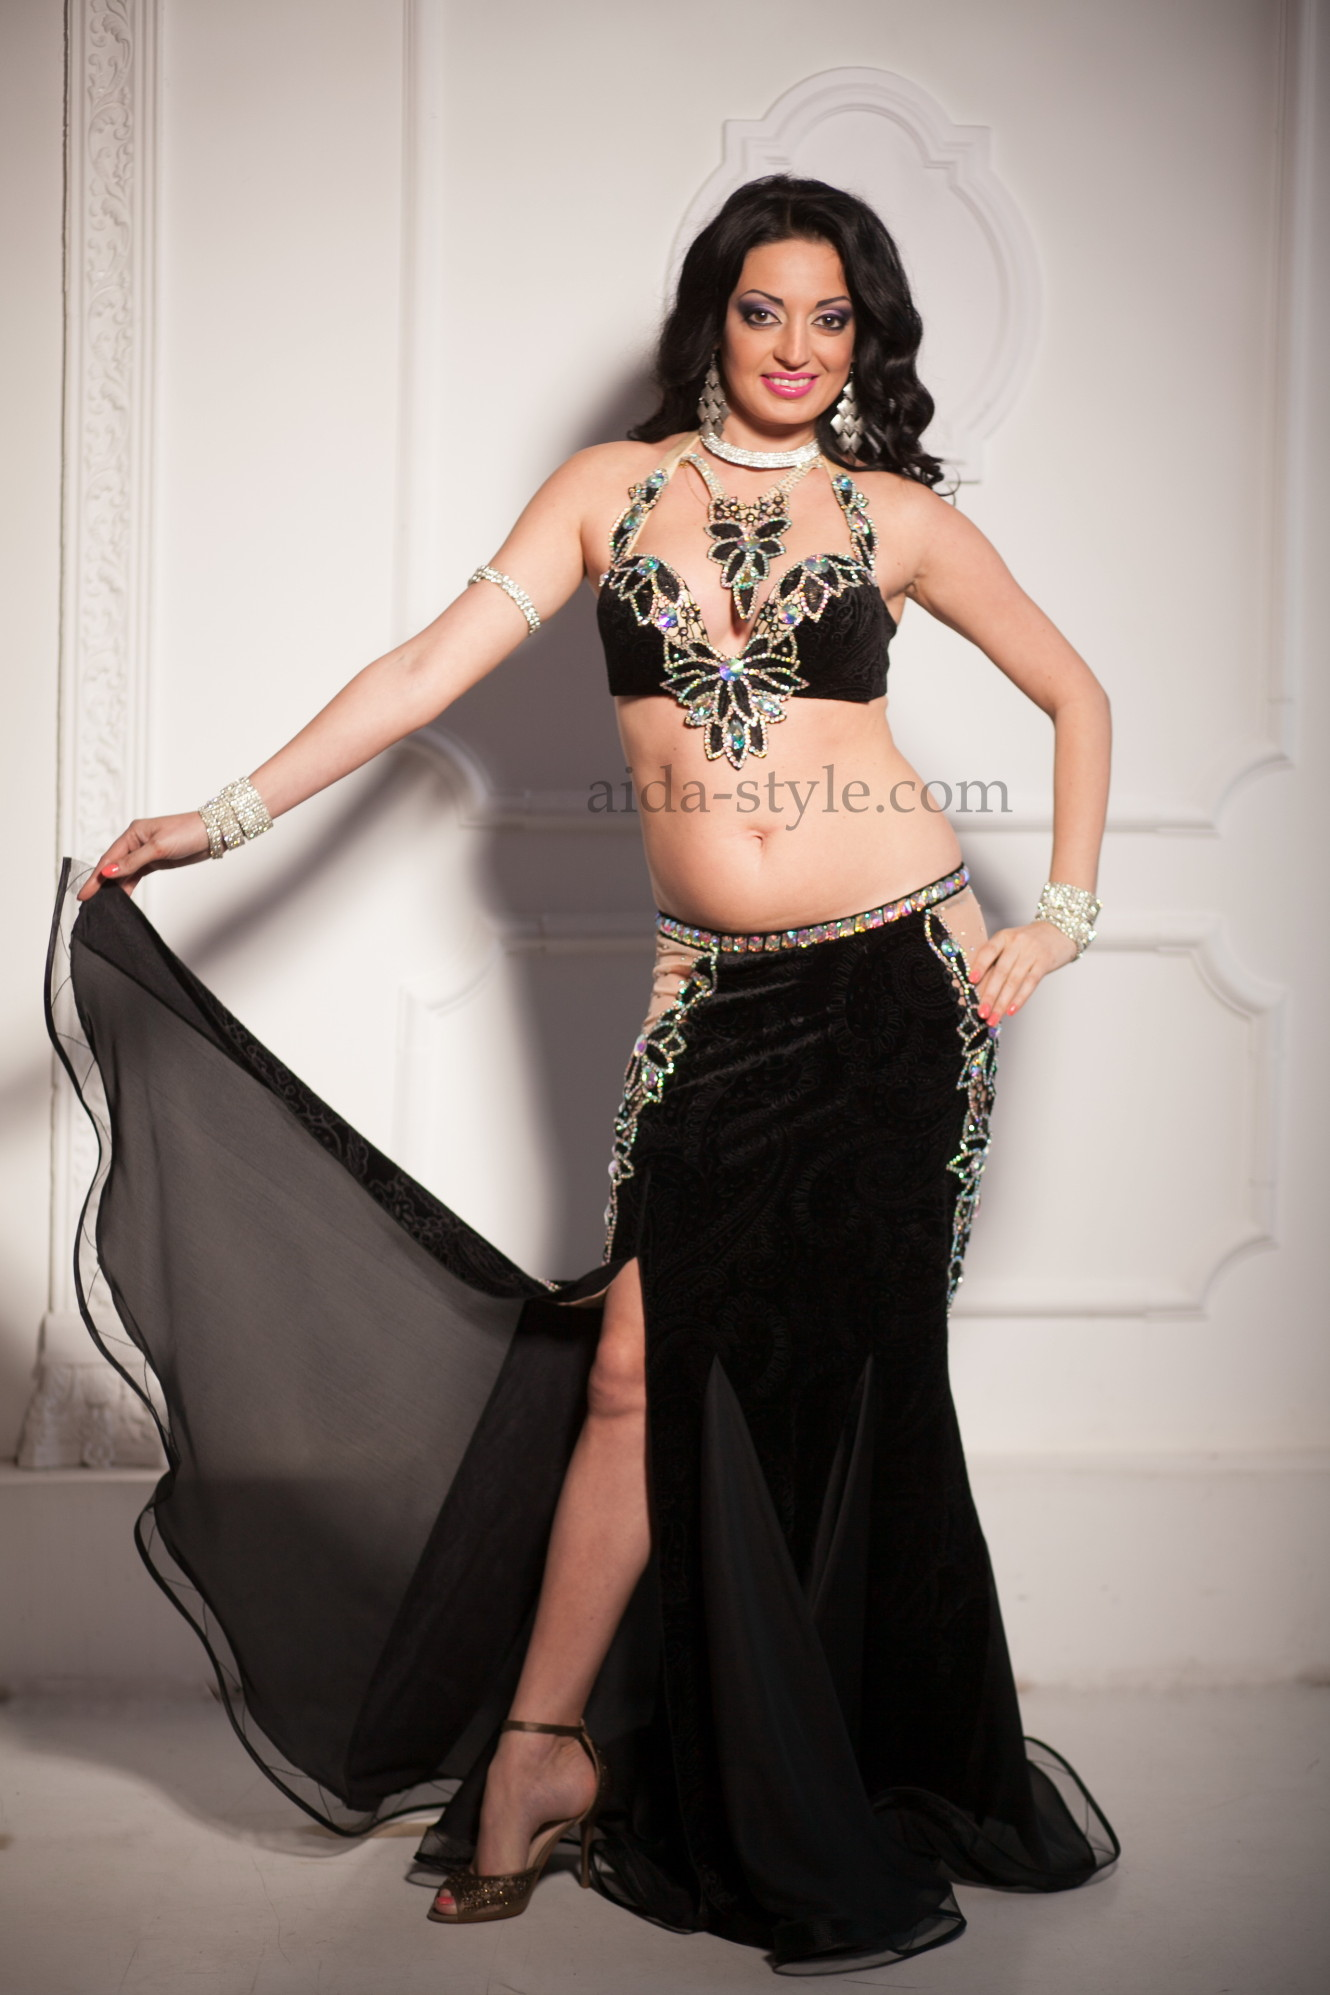 Professional belly dance costume with strip hips and richly decorated bra